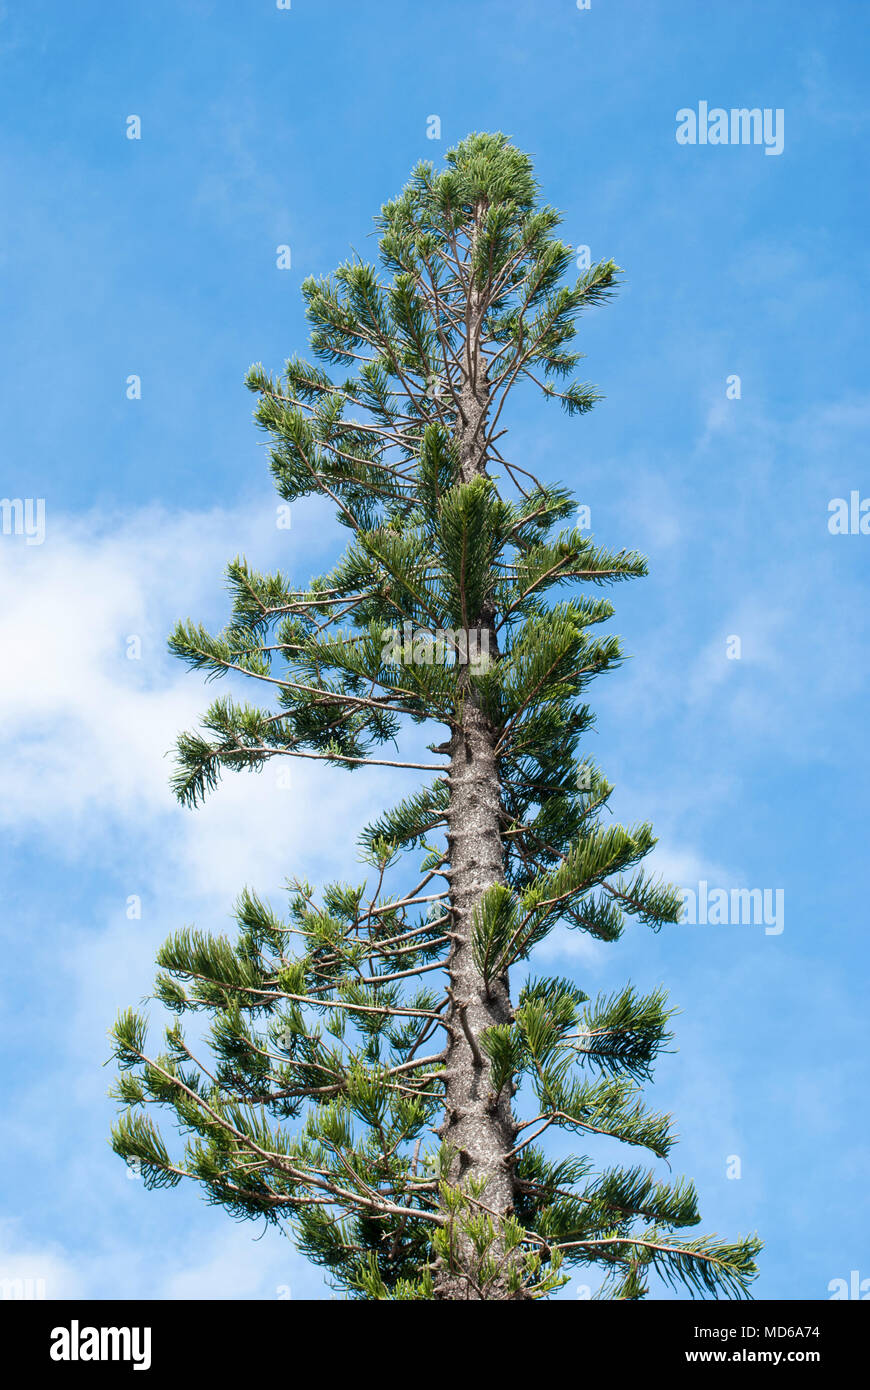 Tropical three with blue sky on background. Concept of vacation and endless summer Stock Photo